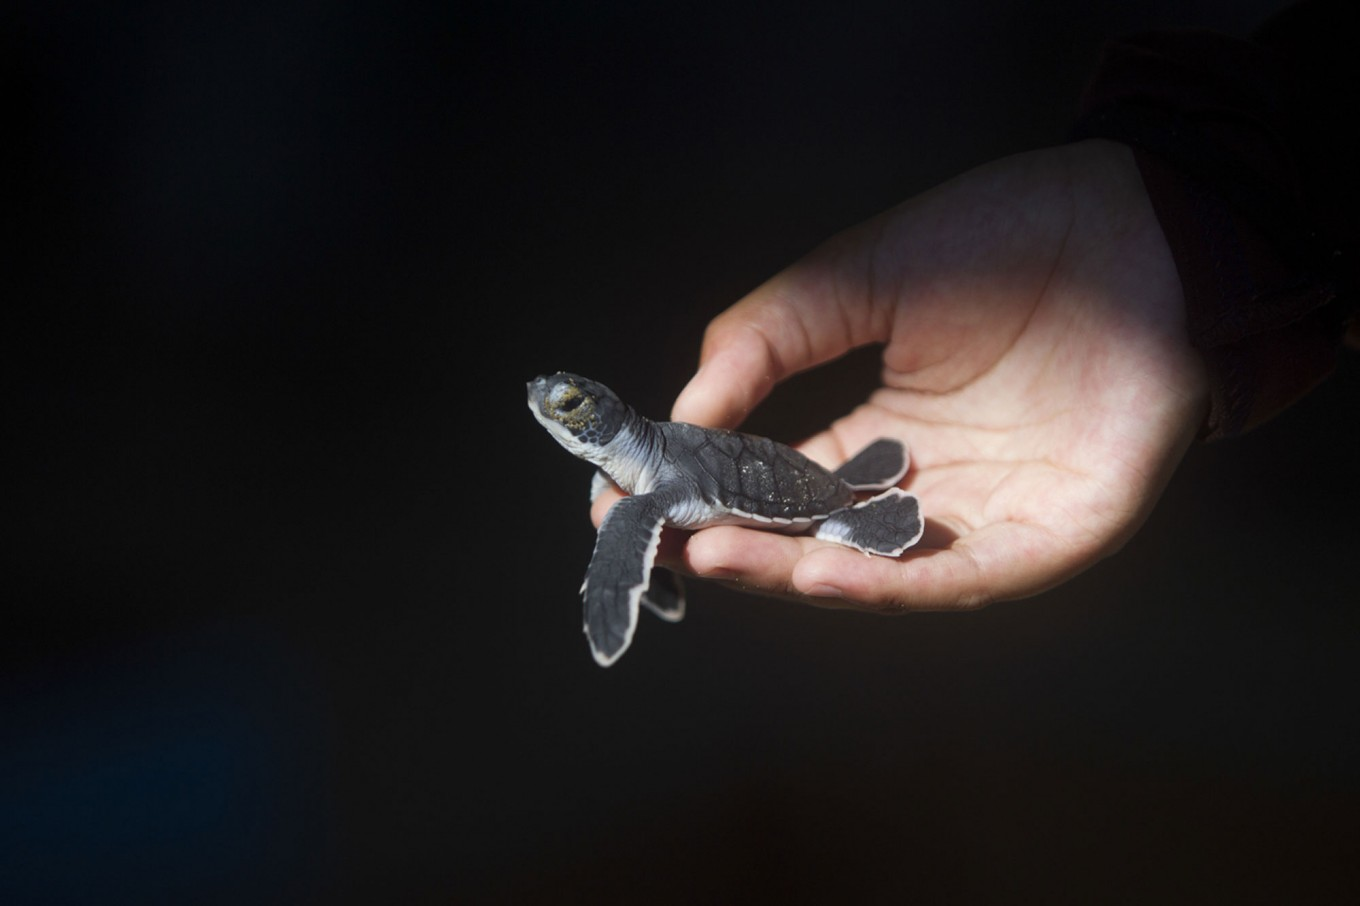 A volunteer holds a newly hatched turtle. JP/ Sigit Pamungkas